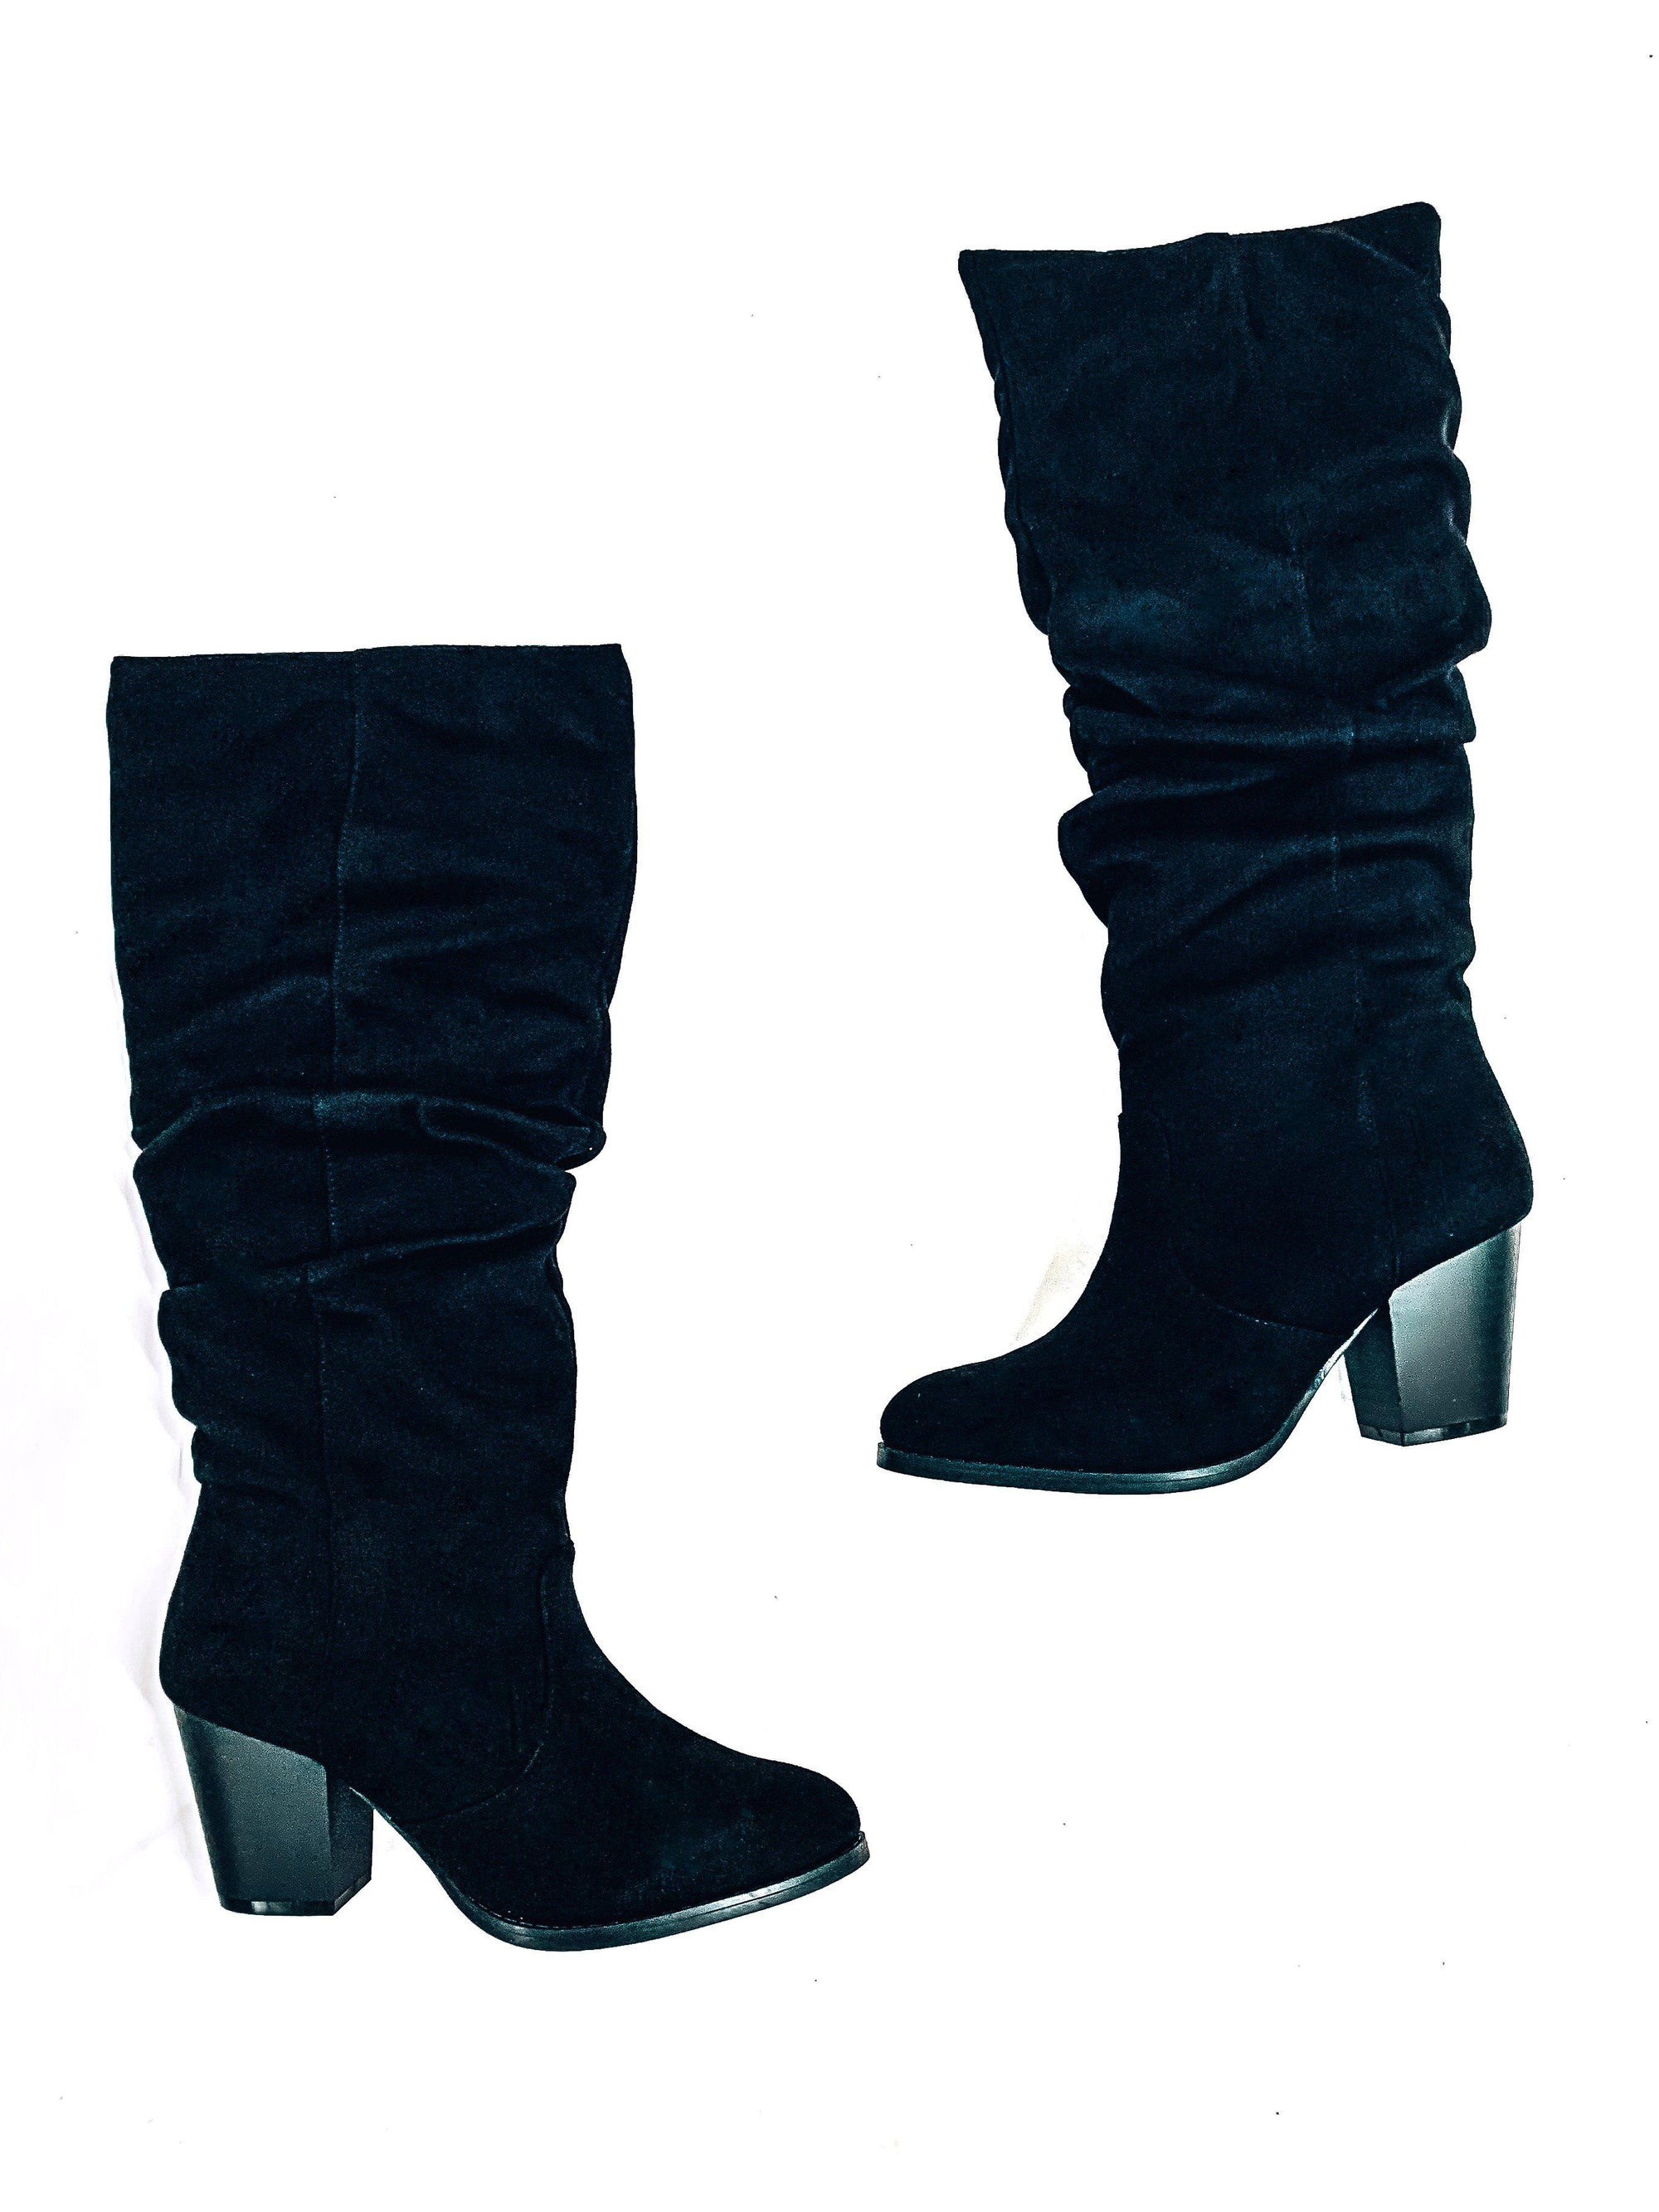 The Ellie-Women's SHOES-New Arrivals-Runway Seven - Women's Clothing Boutique